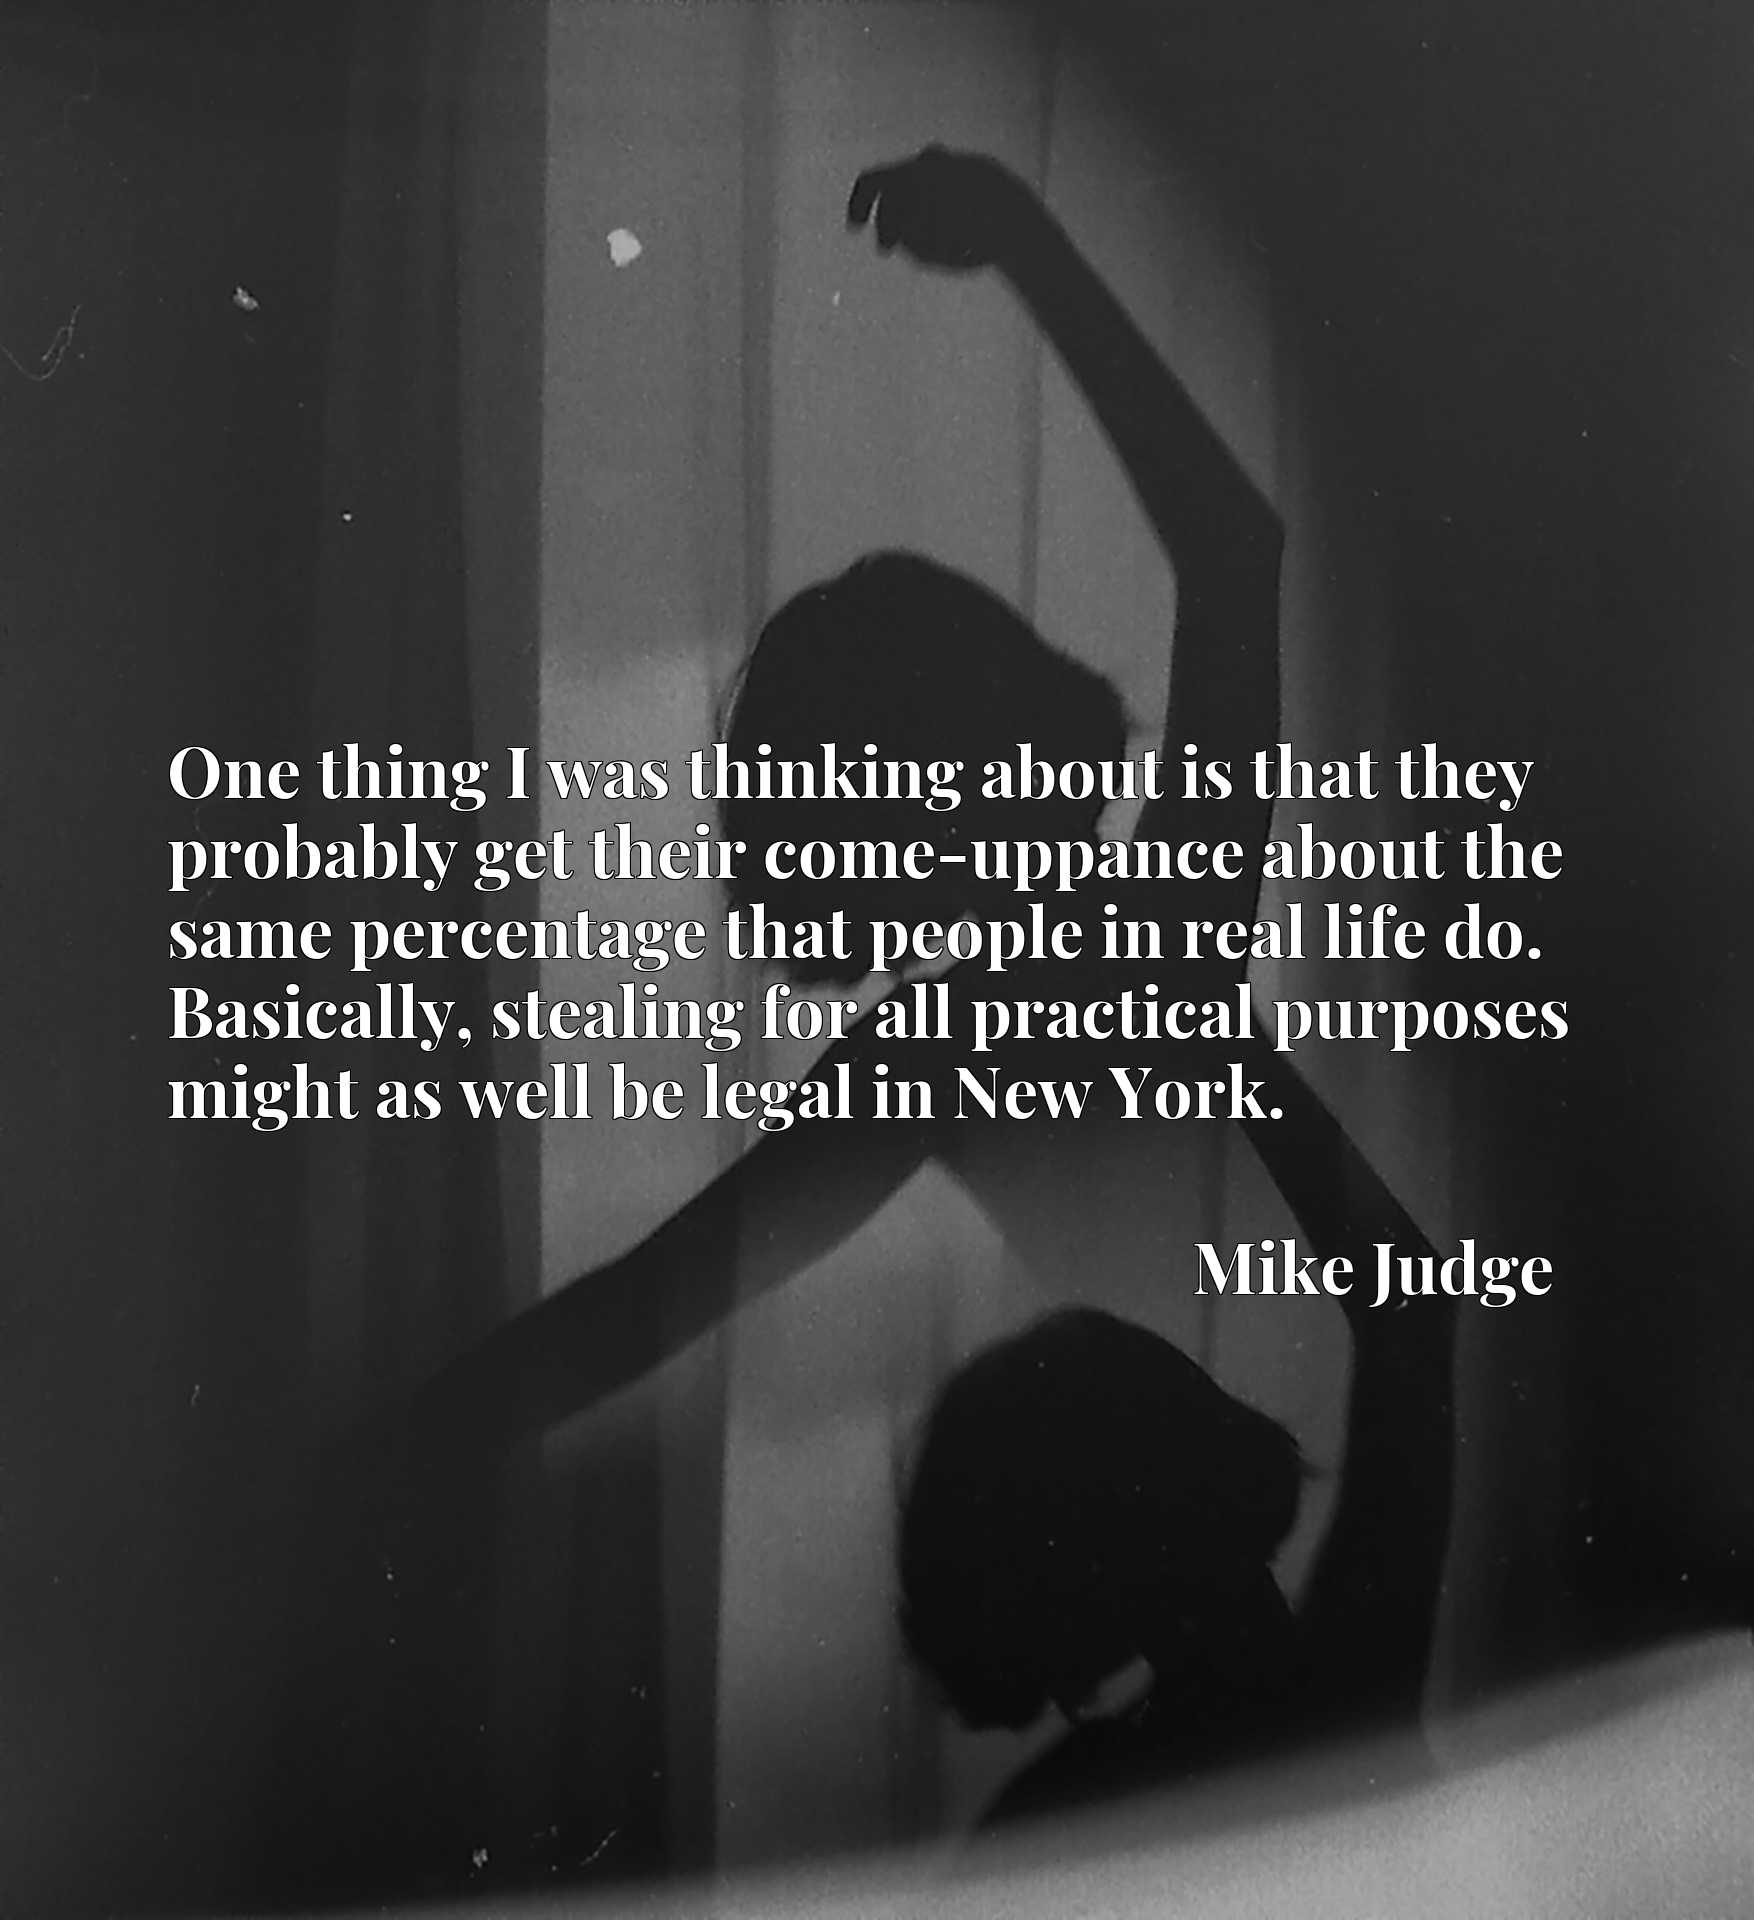 Quote Picture :One thing I was thinking about is that they probably get their come-uppance about the same percentage that people in real life do. Basically, stealing for all practical purposes might as well be legal in New York.